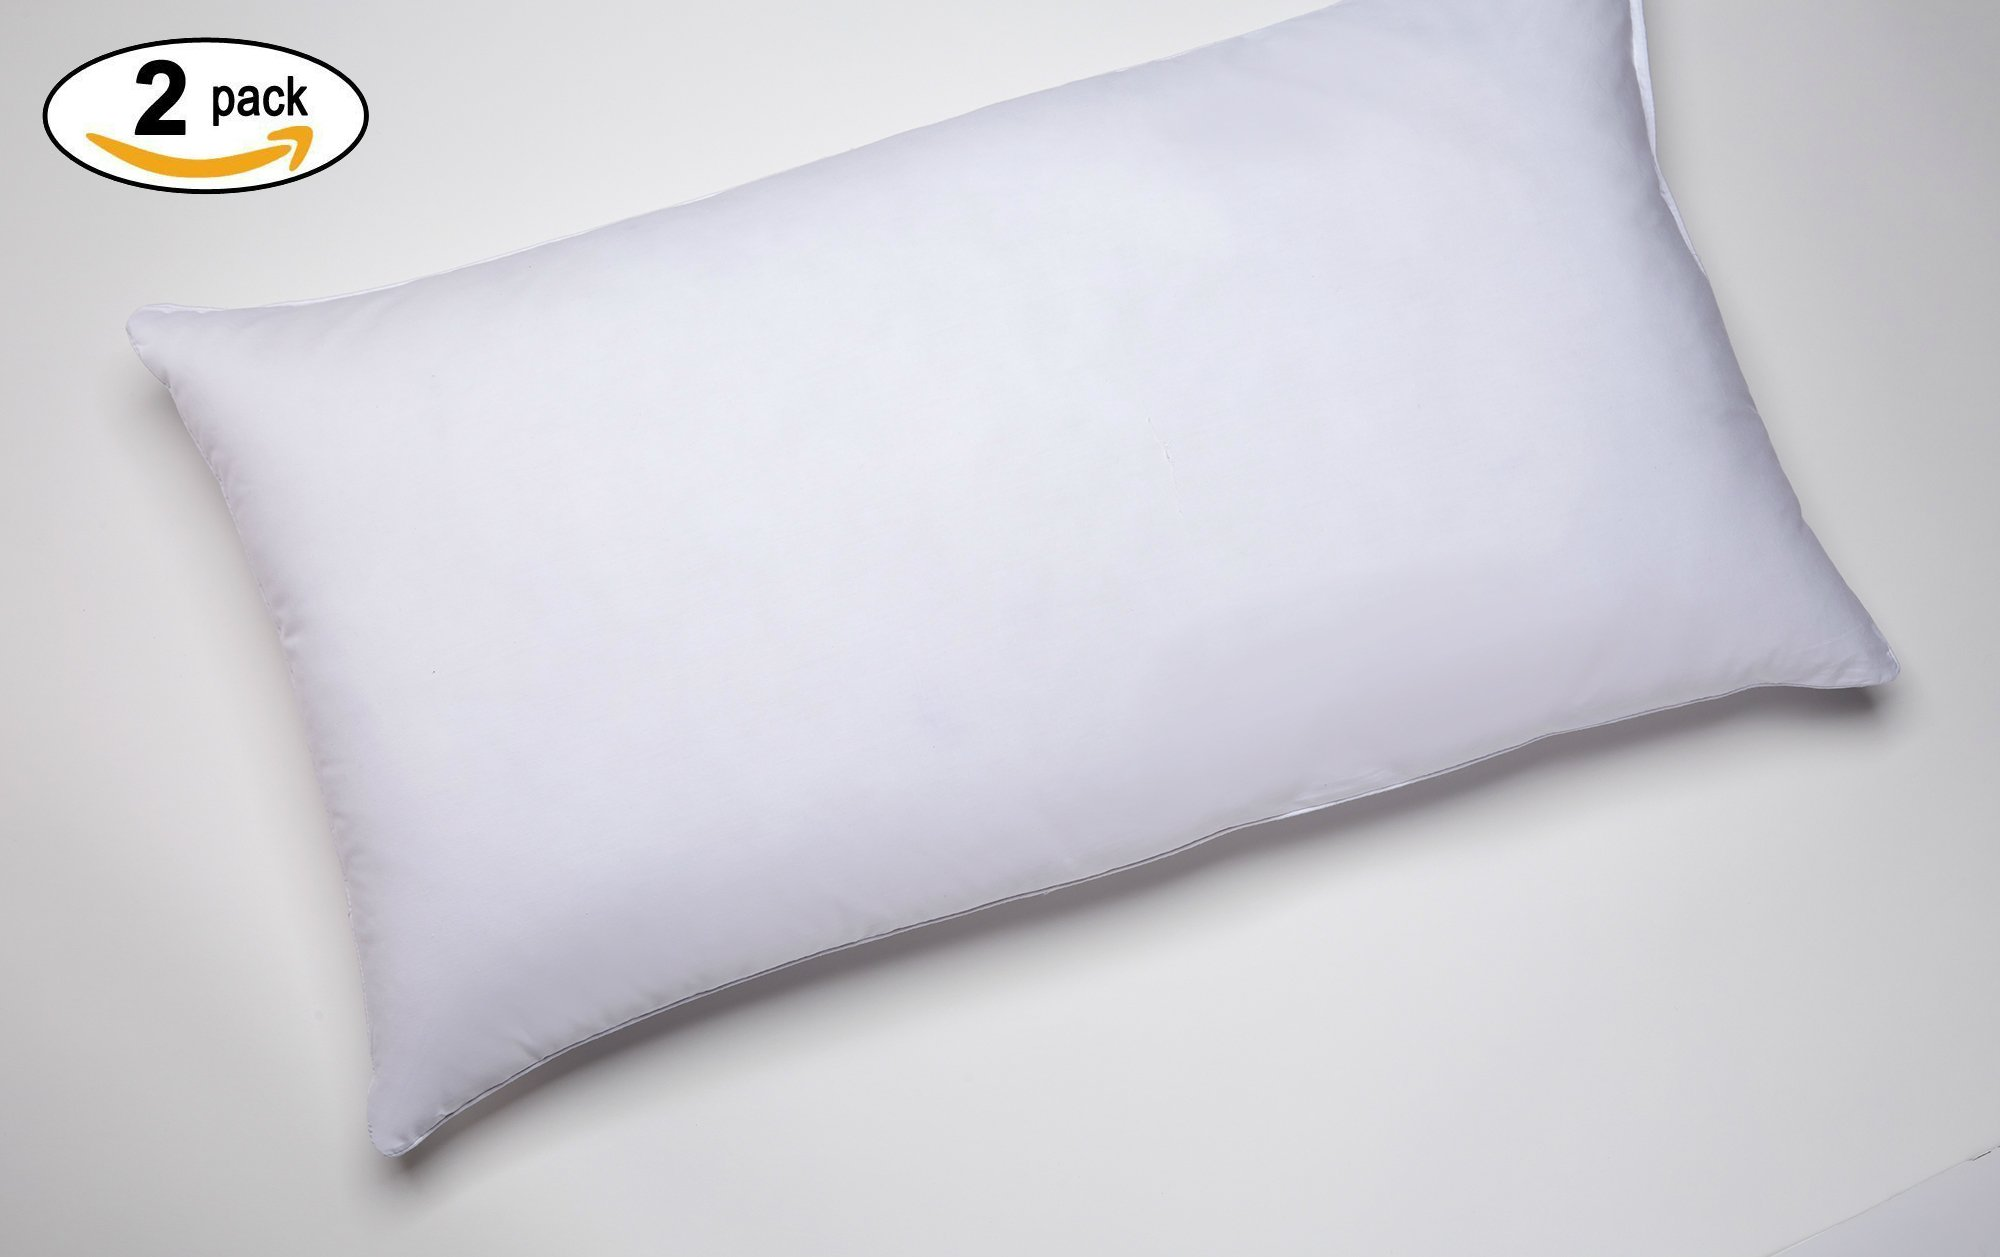 Marriott Hotel Pillow - Hypoallergenic Down Alternative - Official Marriott Pillow - King - 2 Pack